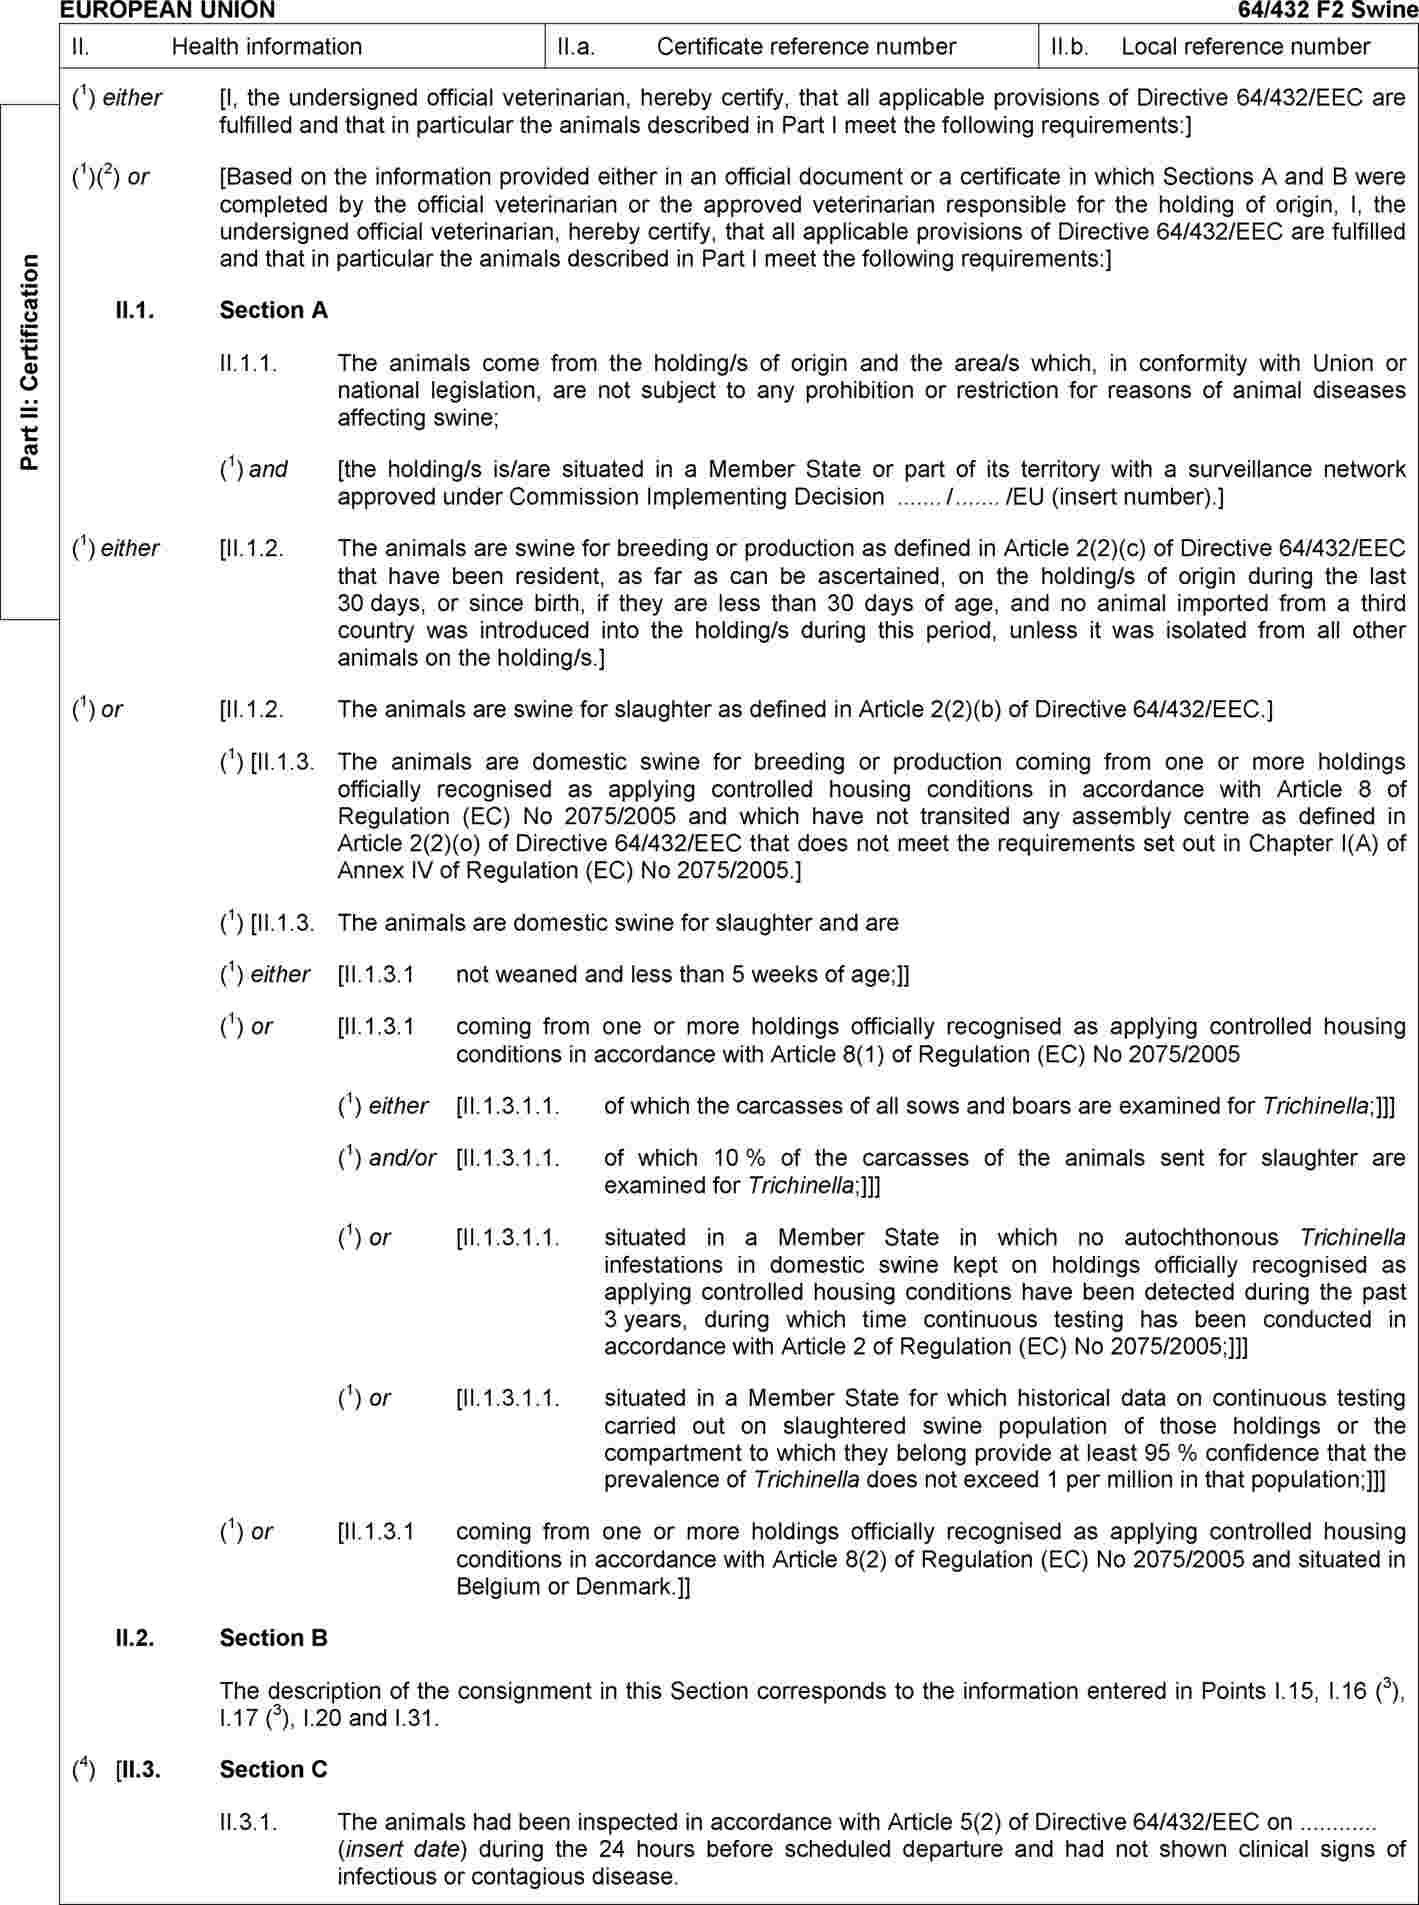 essay habitation in modernity study subaltern wake How to critique a reflective essay essay for private school application lens essay zip essay habitation in modernity study subaltern wake 1500 words double spaced essay elevator hr dissertation methodology australian essay writing service quotes operant conditioning essay years (comparison essay between football and soccer) nursing dissertation service improvement essayer les lunettes sur.